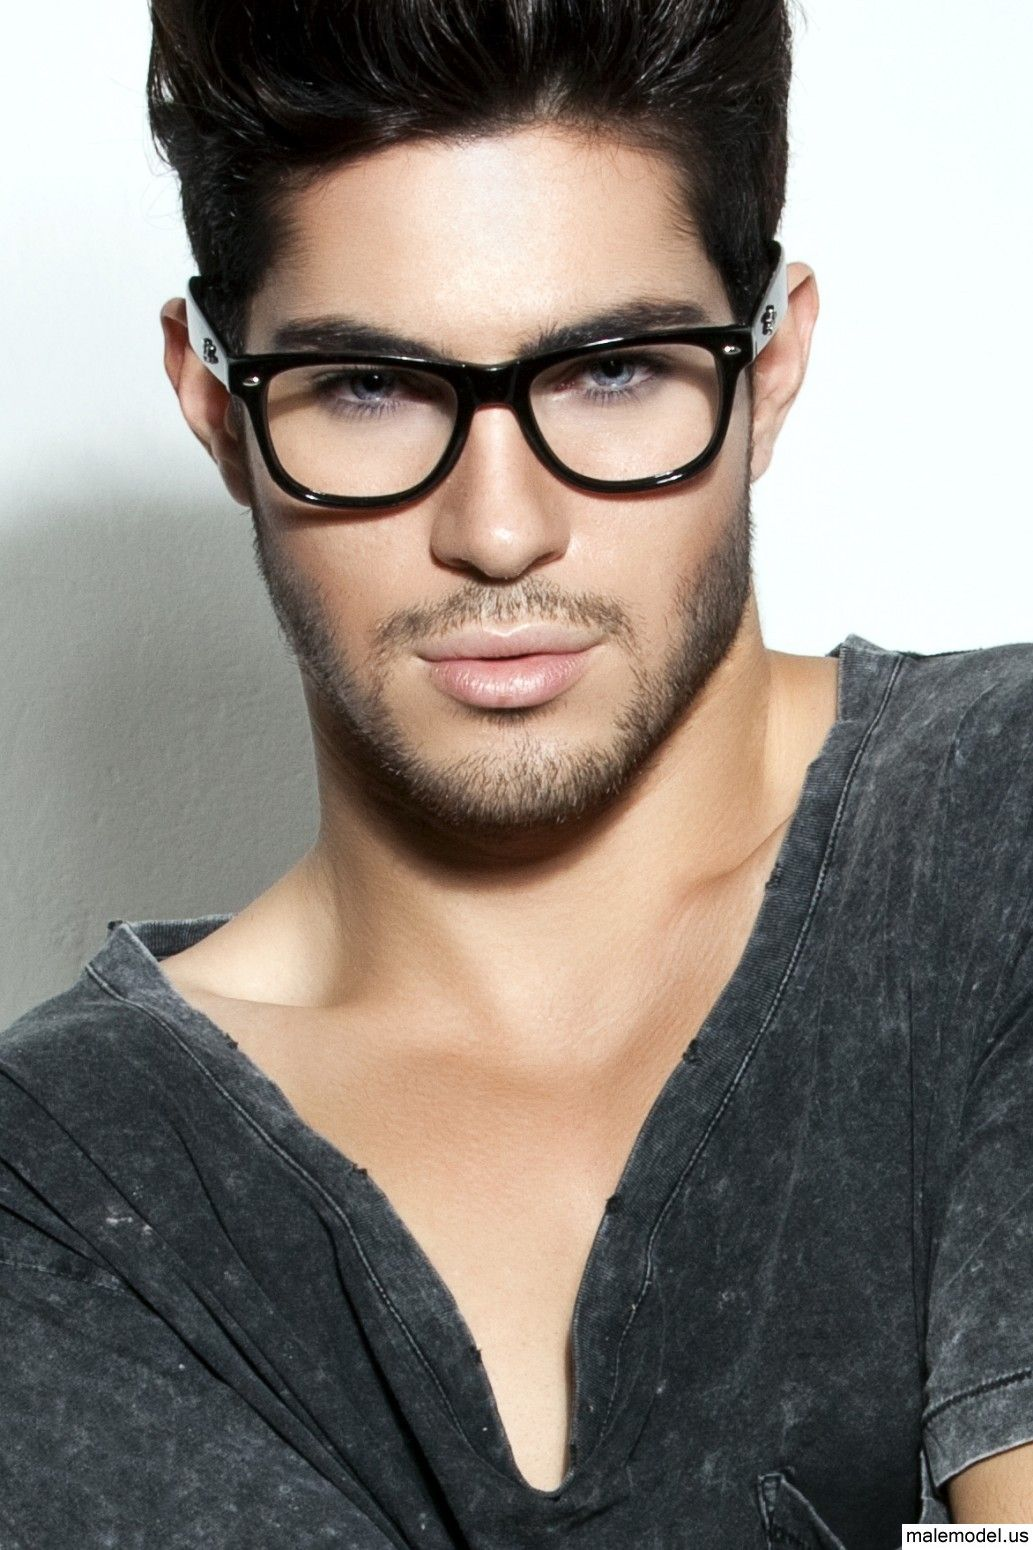 Sexiest glasses for men